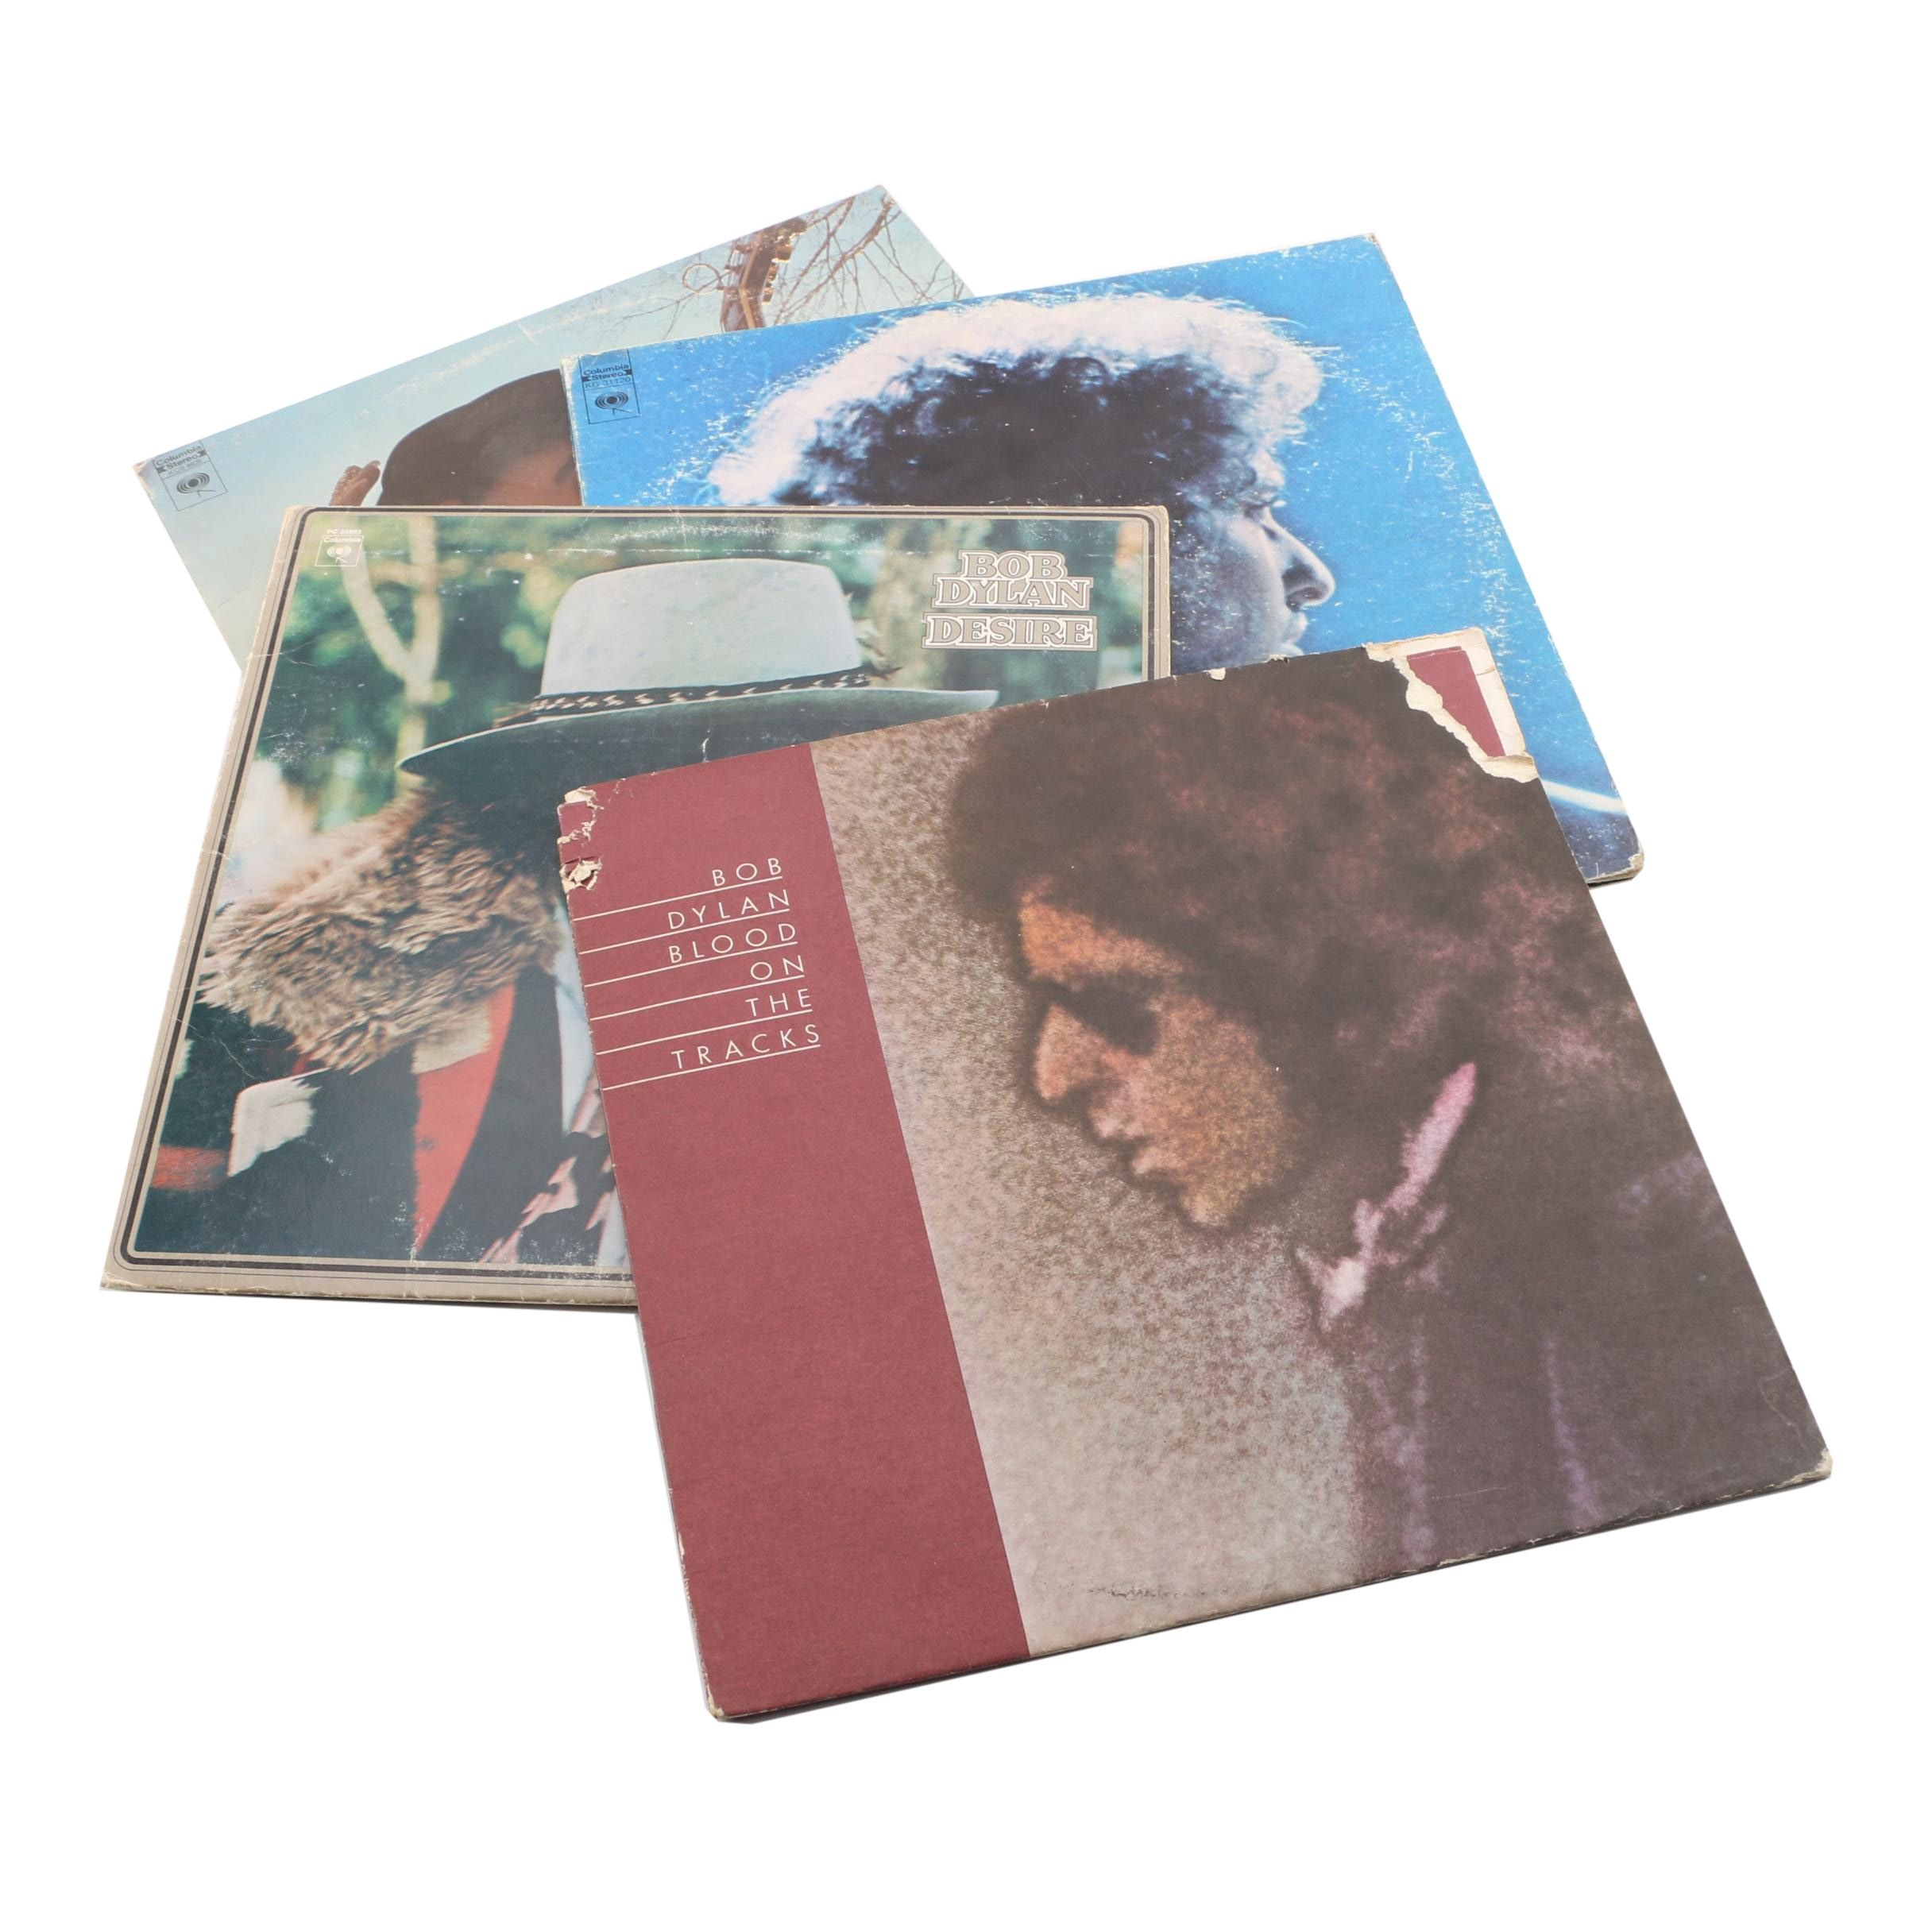 Bob Dylan Records Featuring Blood On The Tracks